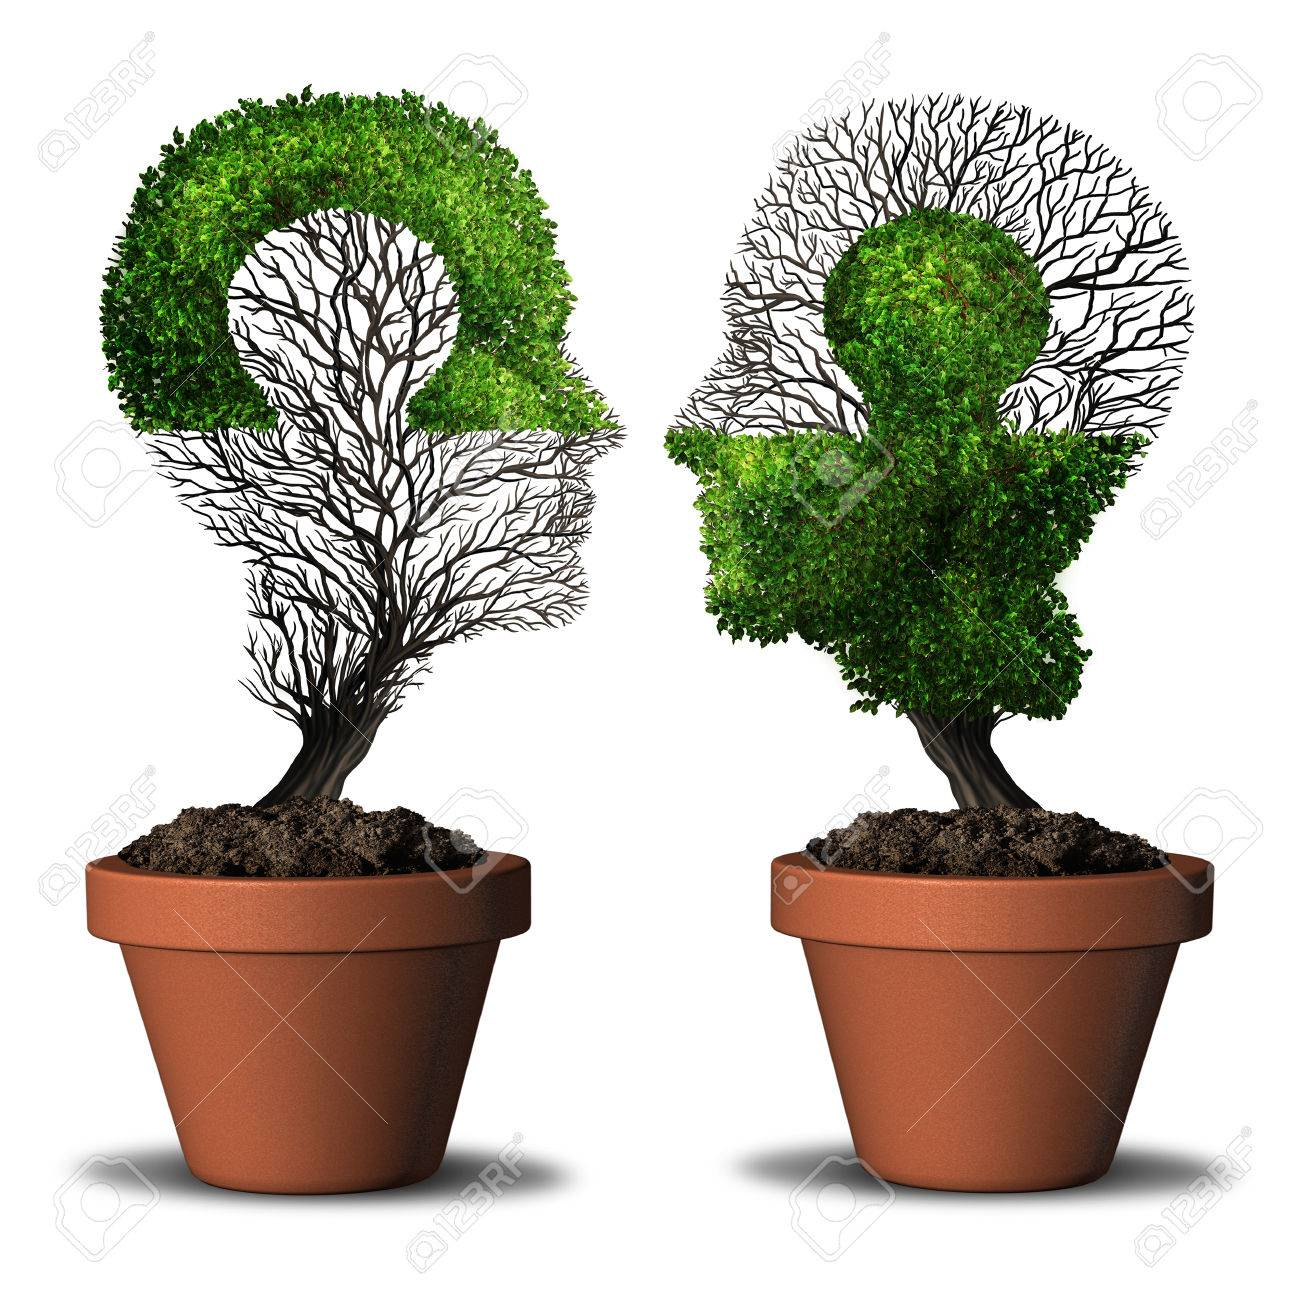 Perfect partner combination relationship and dual friendship concept as two trees shaped as a human head with a jigsaw puzzle with 3D illustration elements. - 84911447